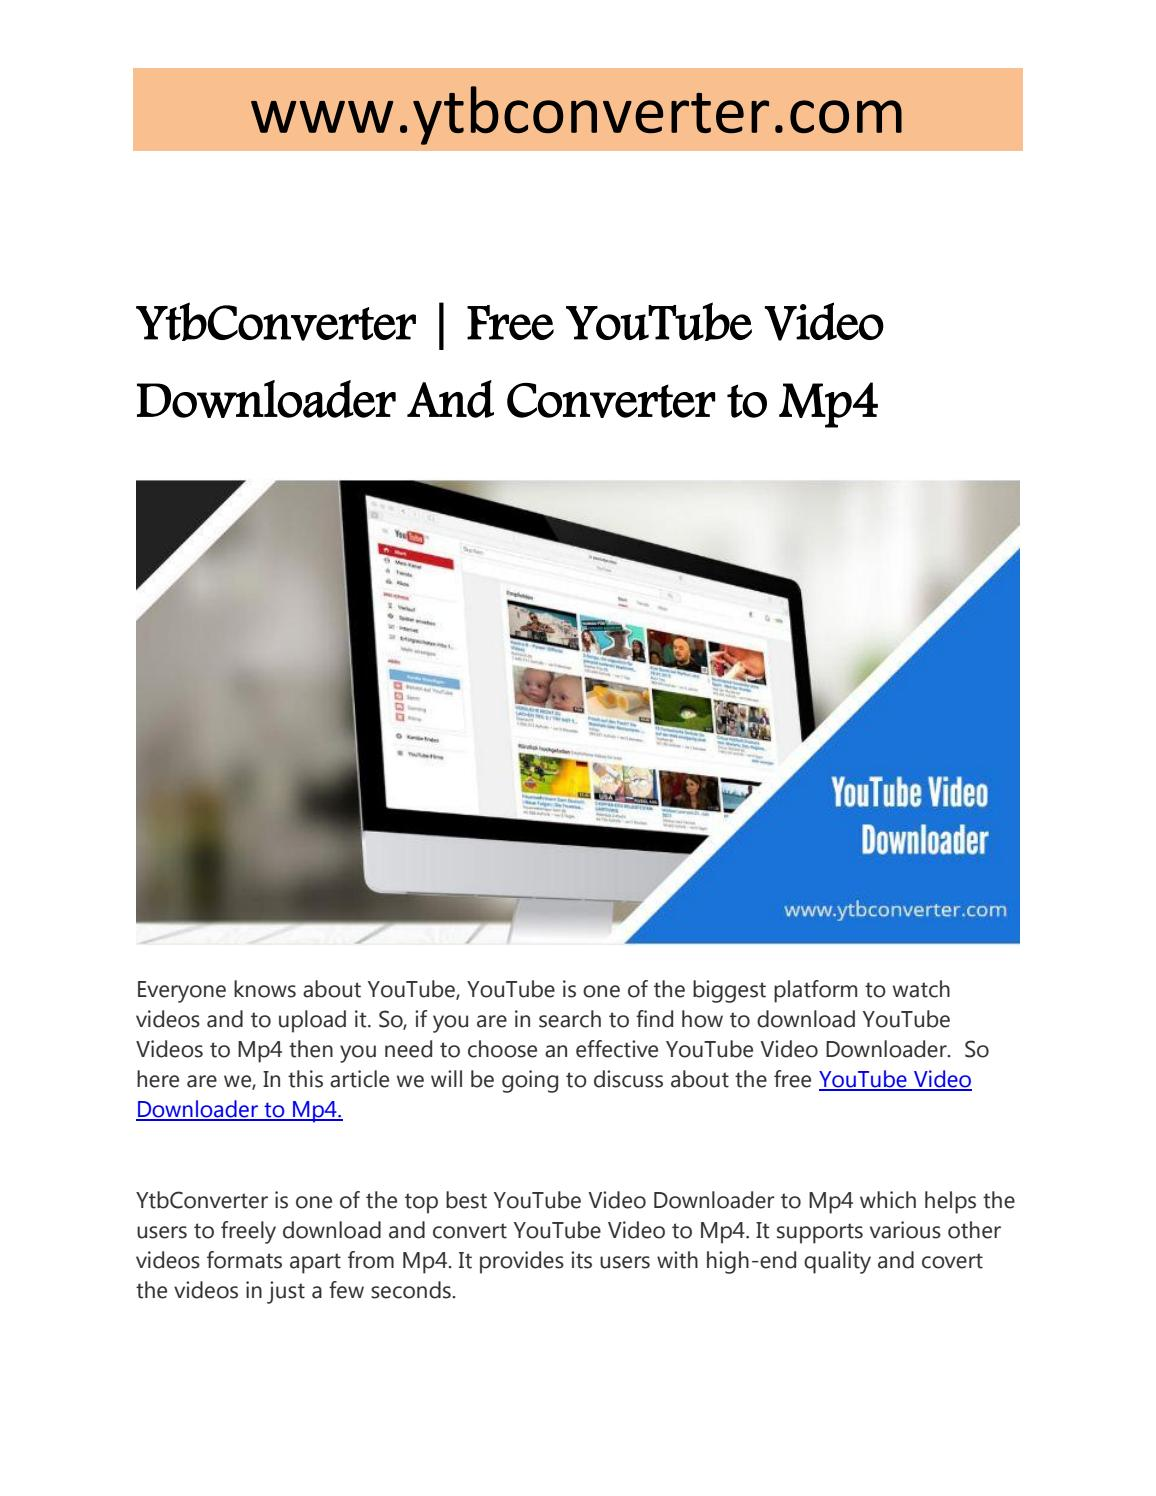 YtbConverter | Free YouTube Video Downloader And Converter to Mp4 by